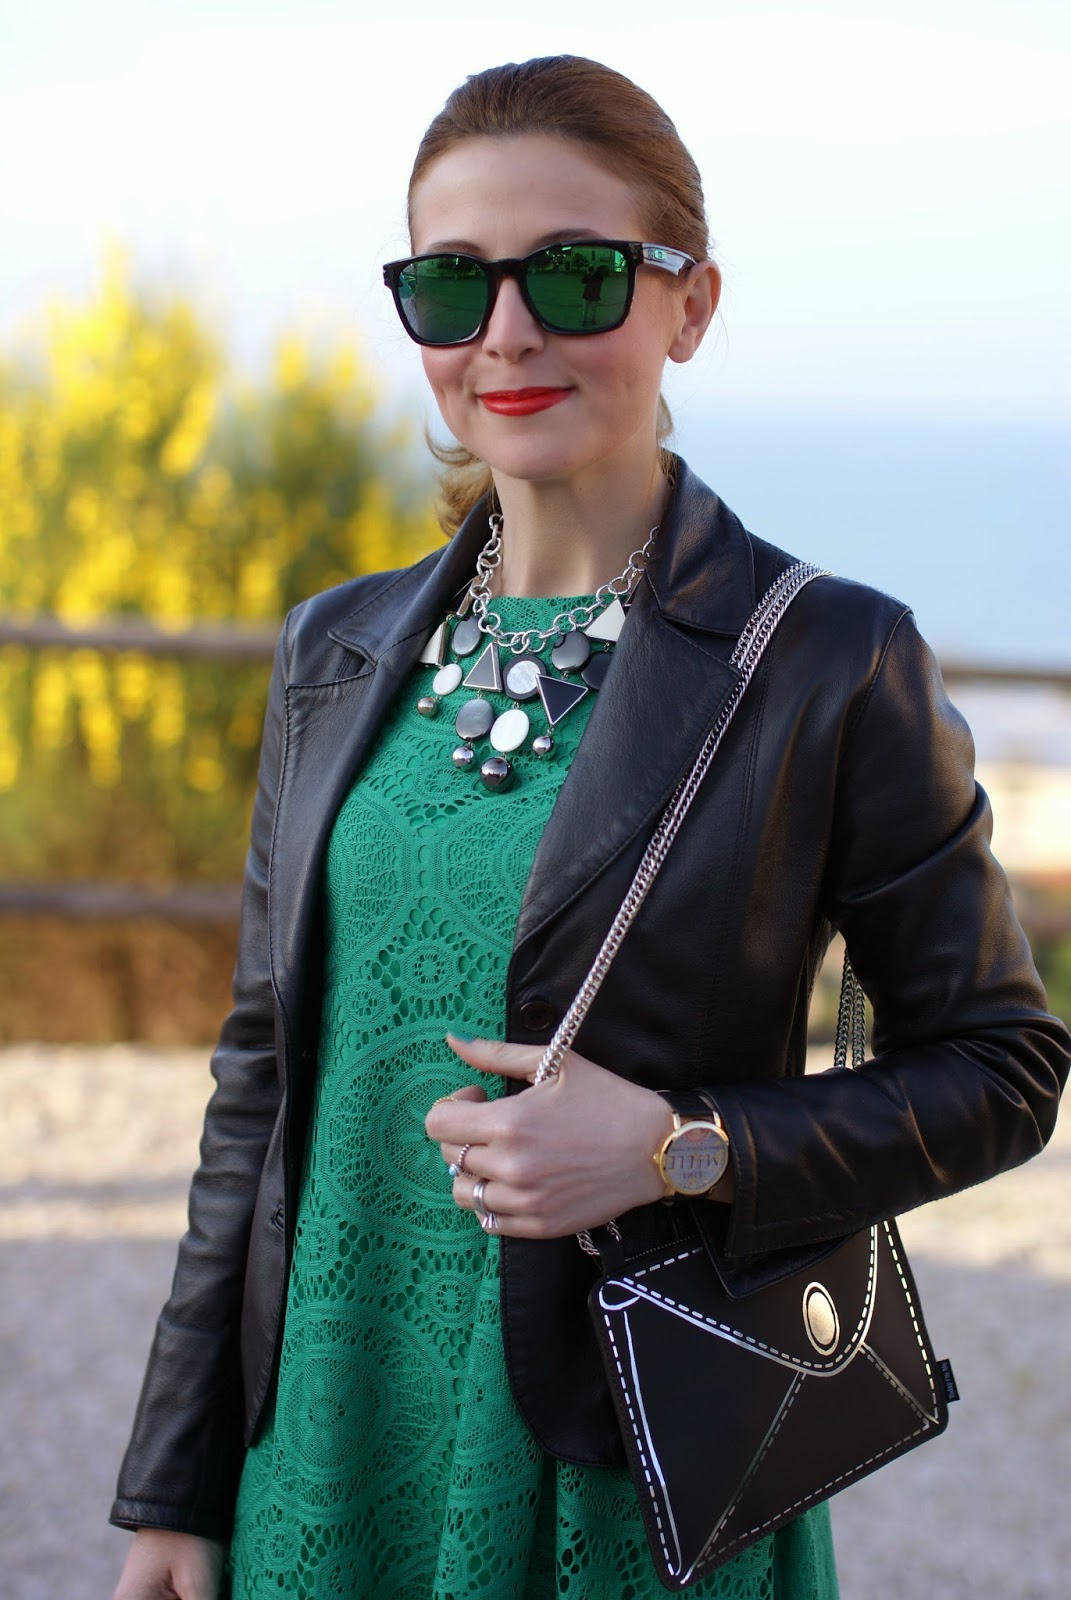 Vitti Ferria Contin collana, Millelire watch, Sheinside green dress, Fashion and Cookies, fashion blogger